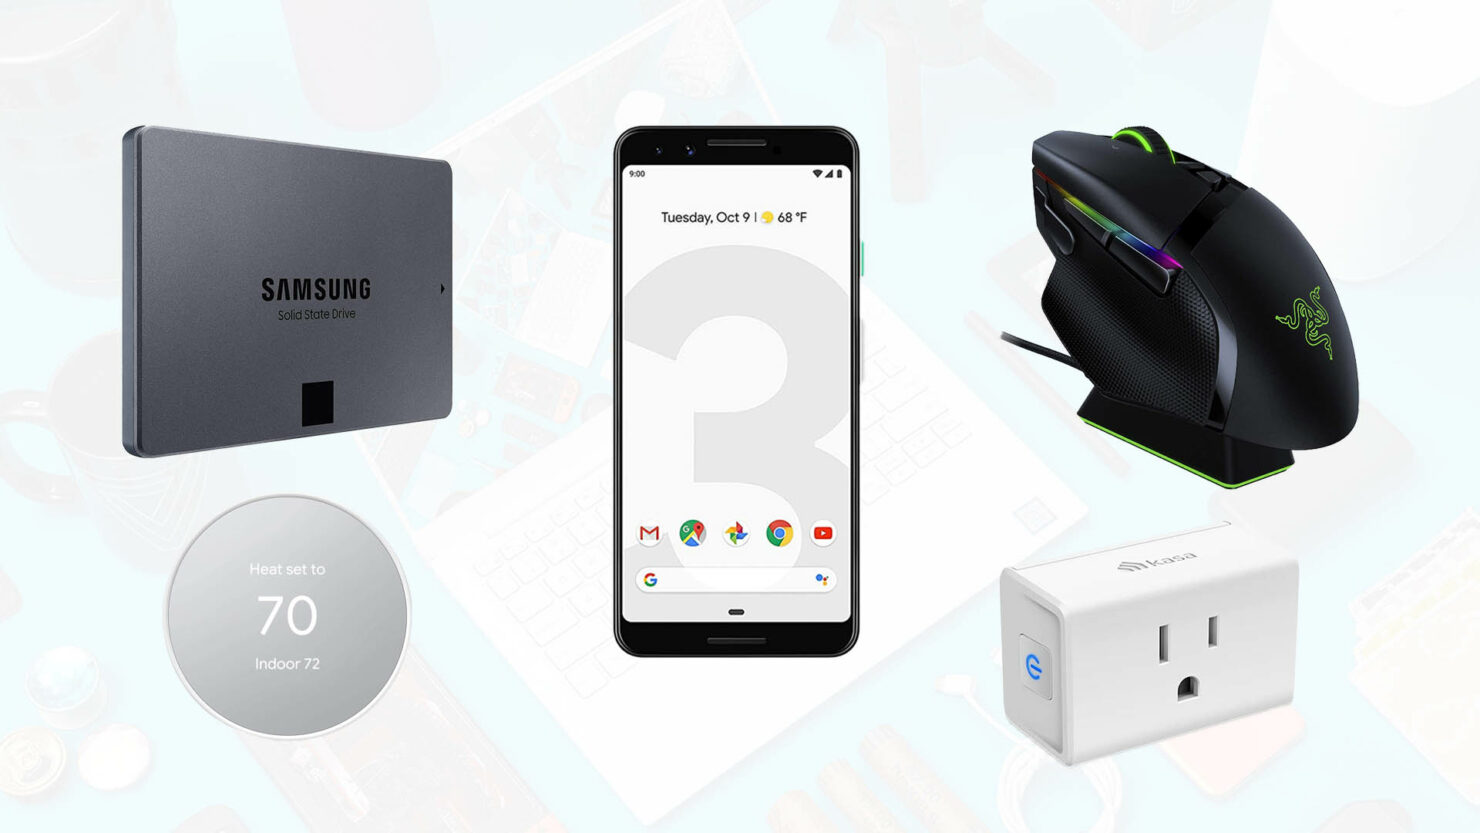 Samsung 2TB SSD for $190, Renewed Pixel 3 for $130, Basilisk X Ultimate Hyperspeed for $45 off, & More Deals for Today